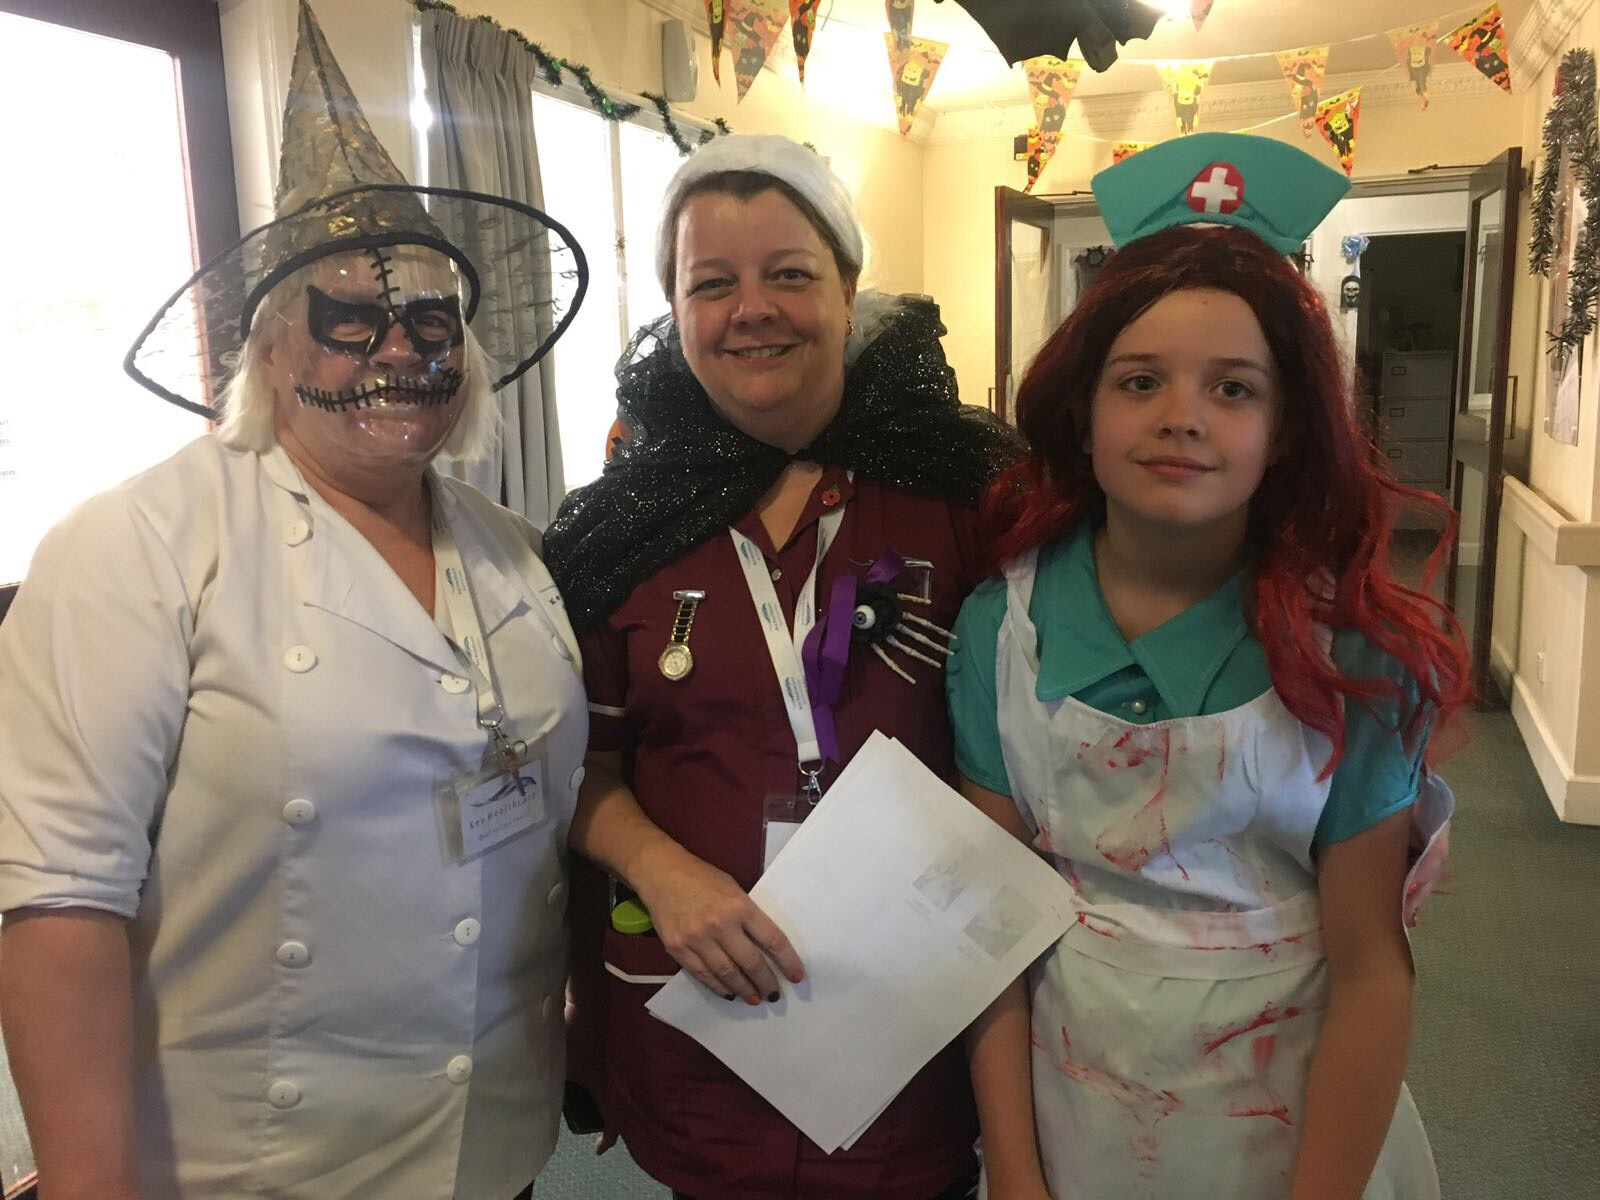 Spooky Uniform at Halloween!: Key Healthcare is dedicated to caring for elderly residents in safe. We have multiple dementia care homes including our care home middlesbrough, our care home St. Helen and care home saltburn. We excel in monitoring and improving care levels.